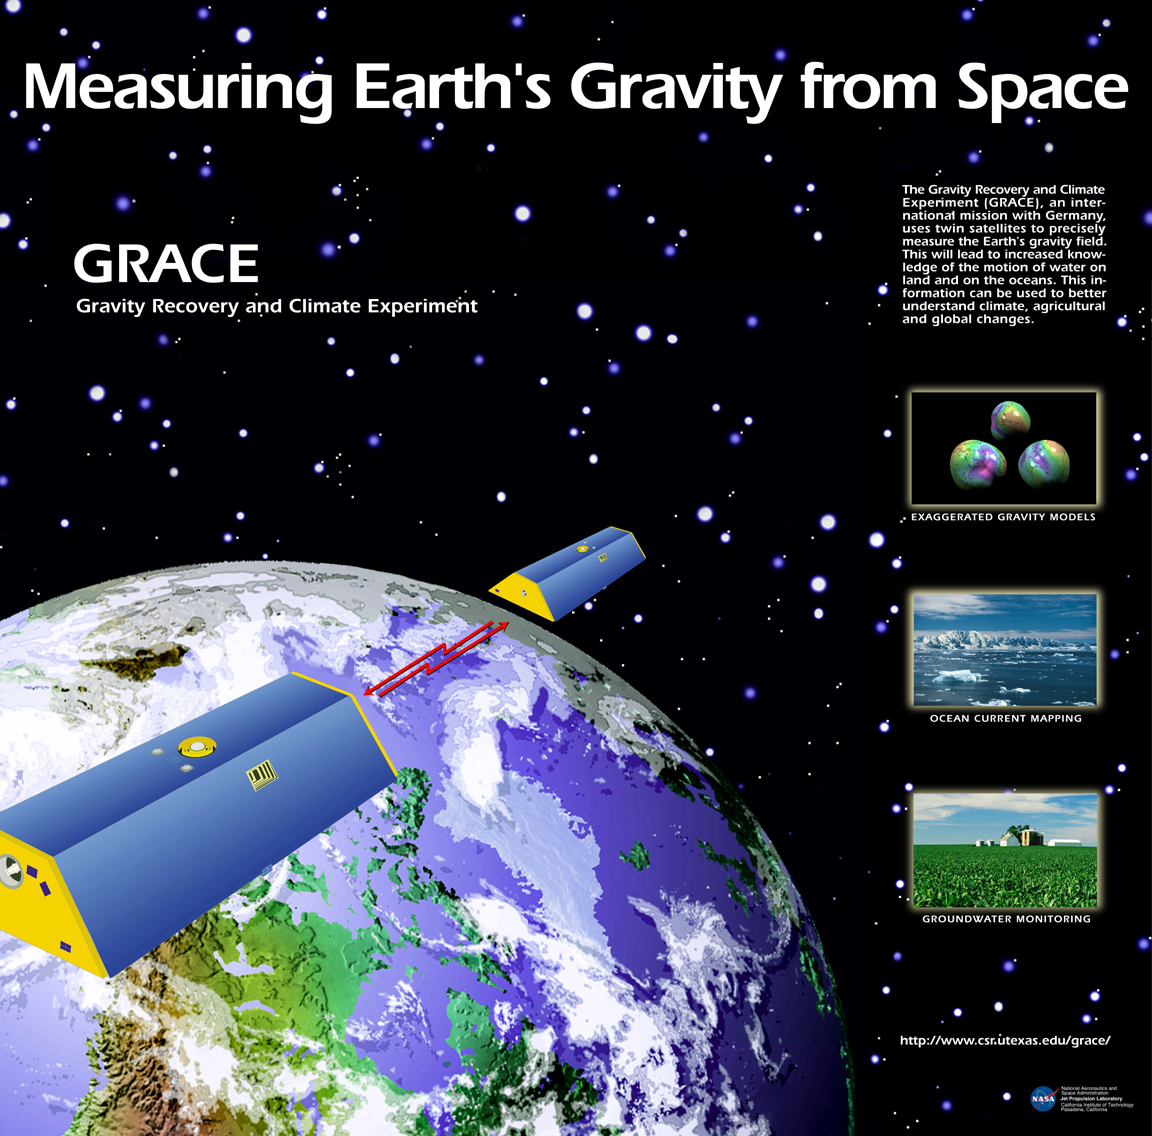 Measuring Earth's Gravity from Space exhibit